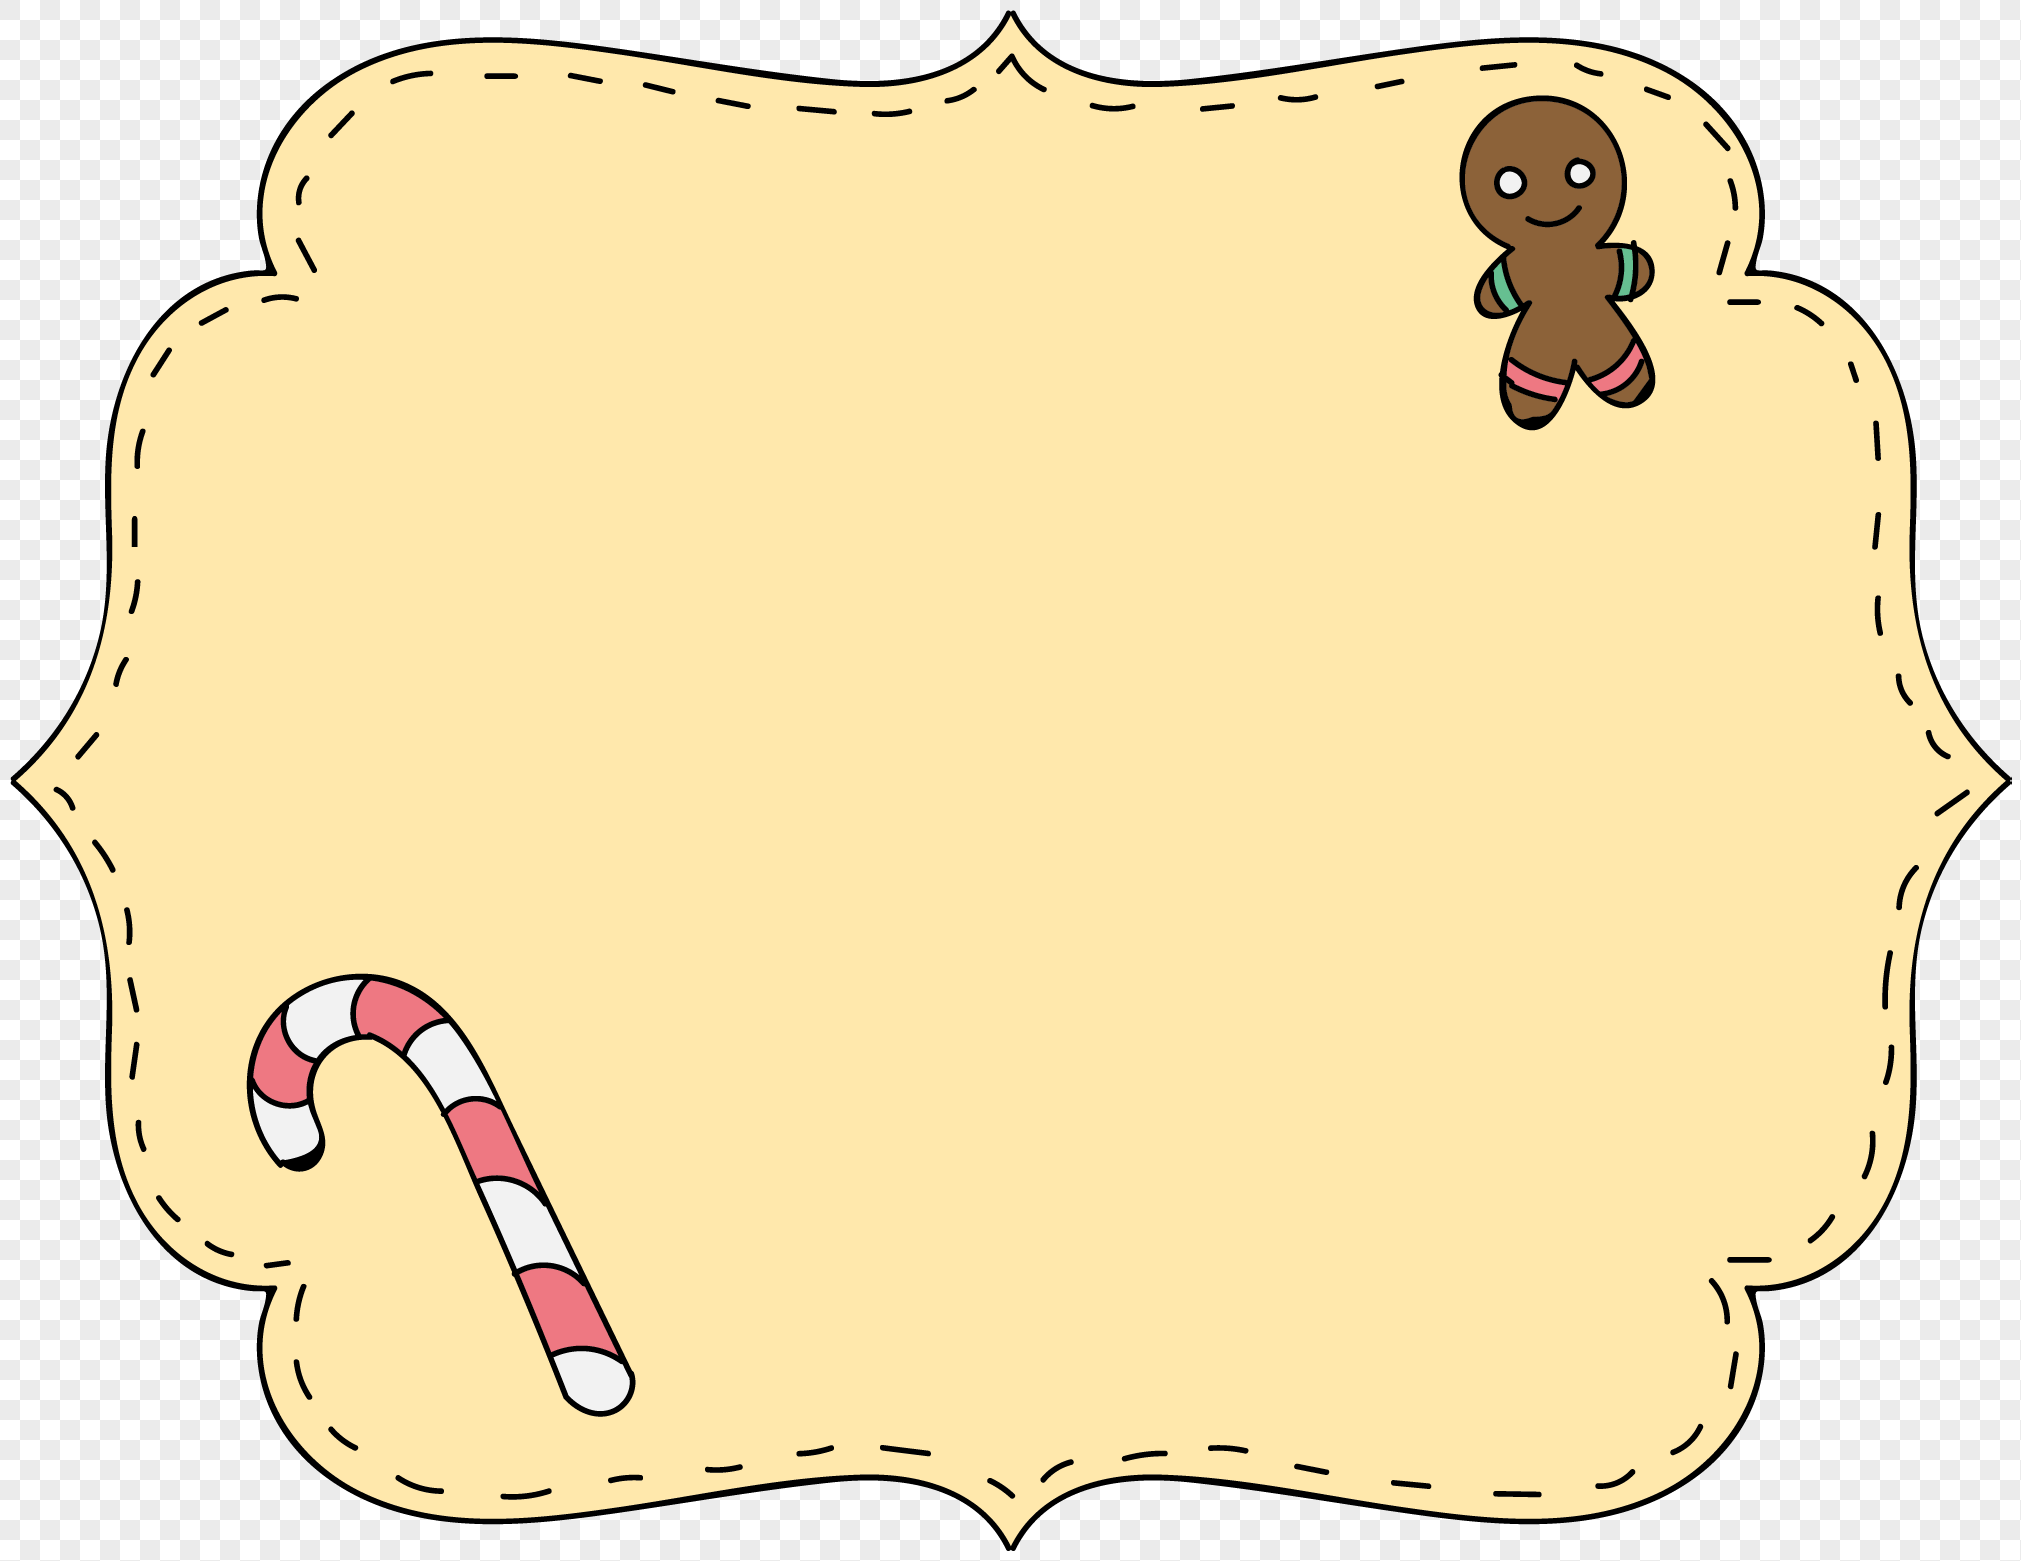 christmas gingerbread character labels border png image picture free